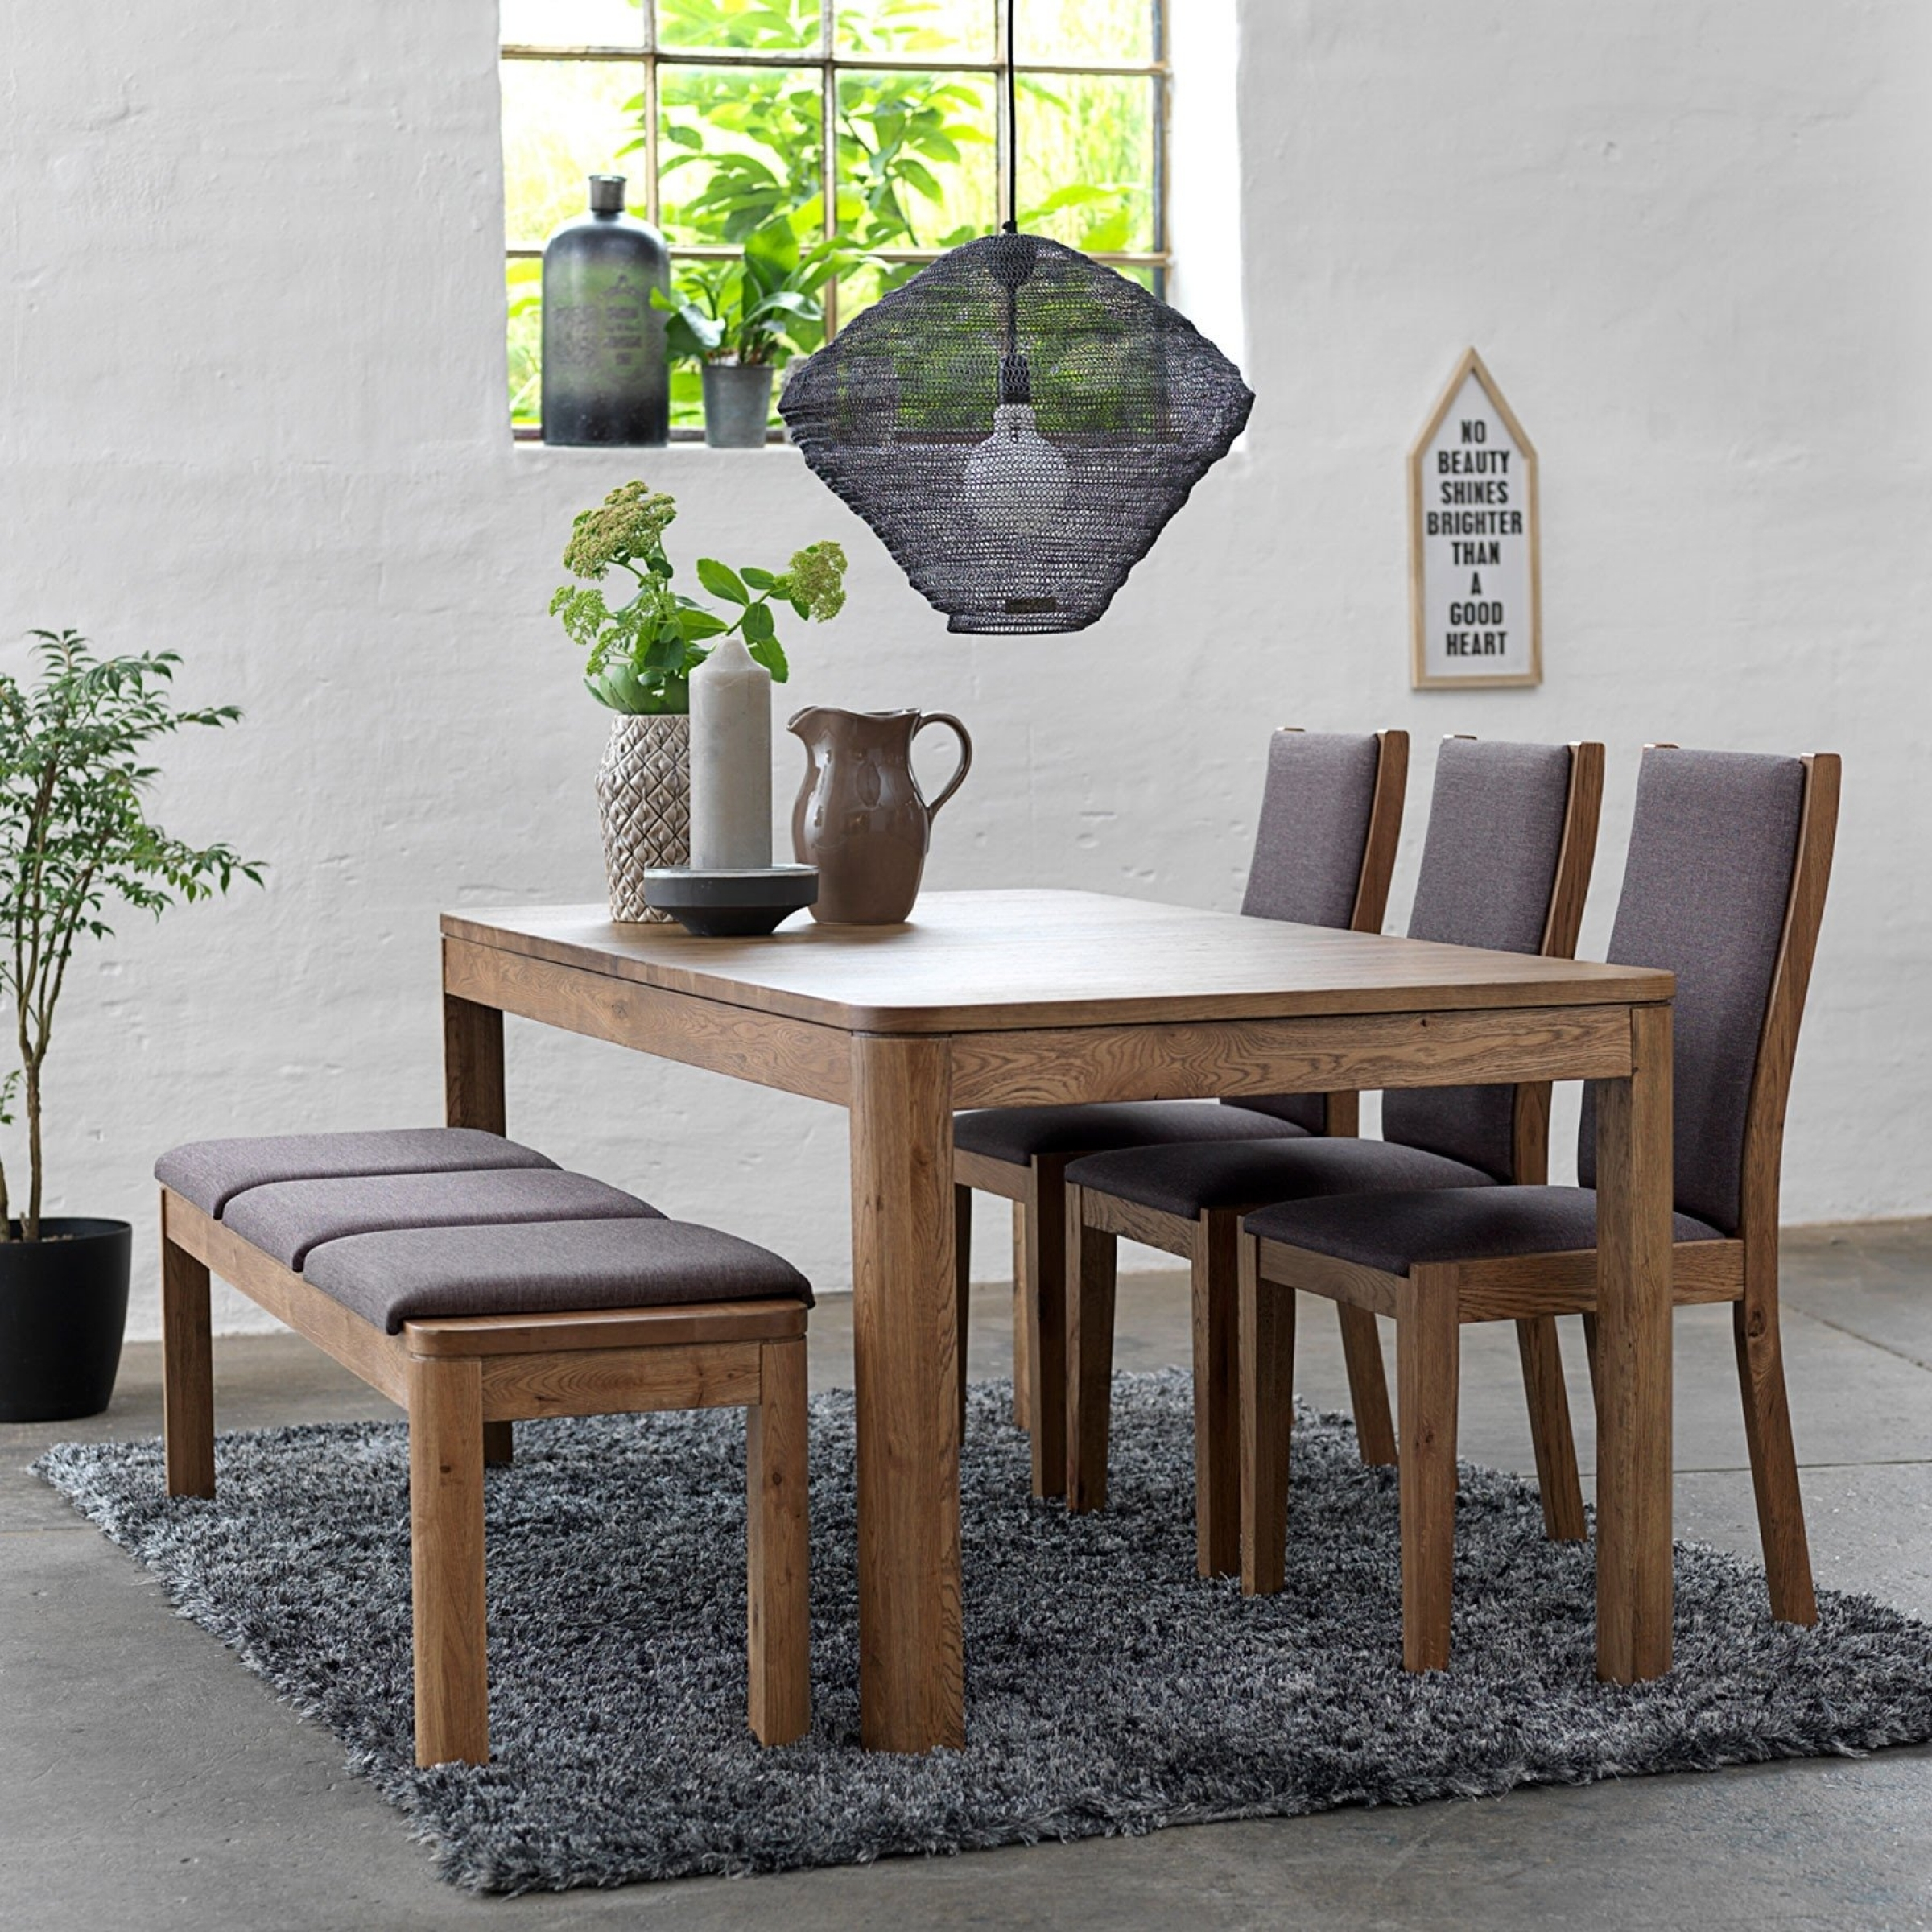 Dining Room Furniture Bench: 50+ Dining Table With Bench You'll Love In 2020